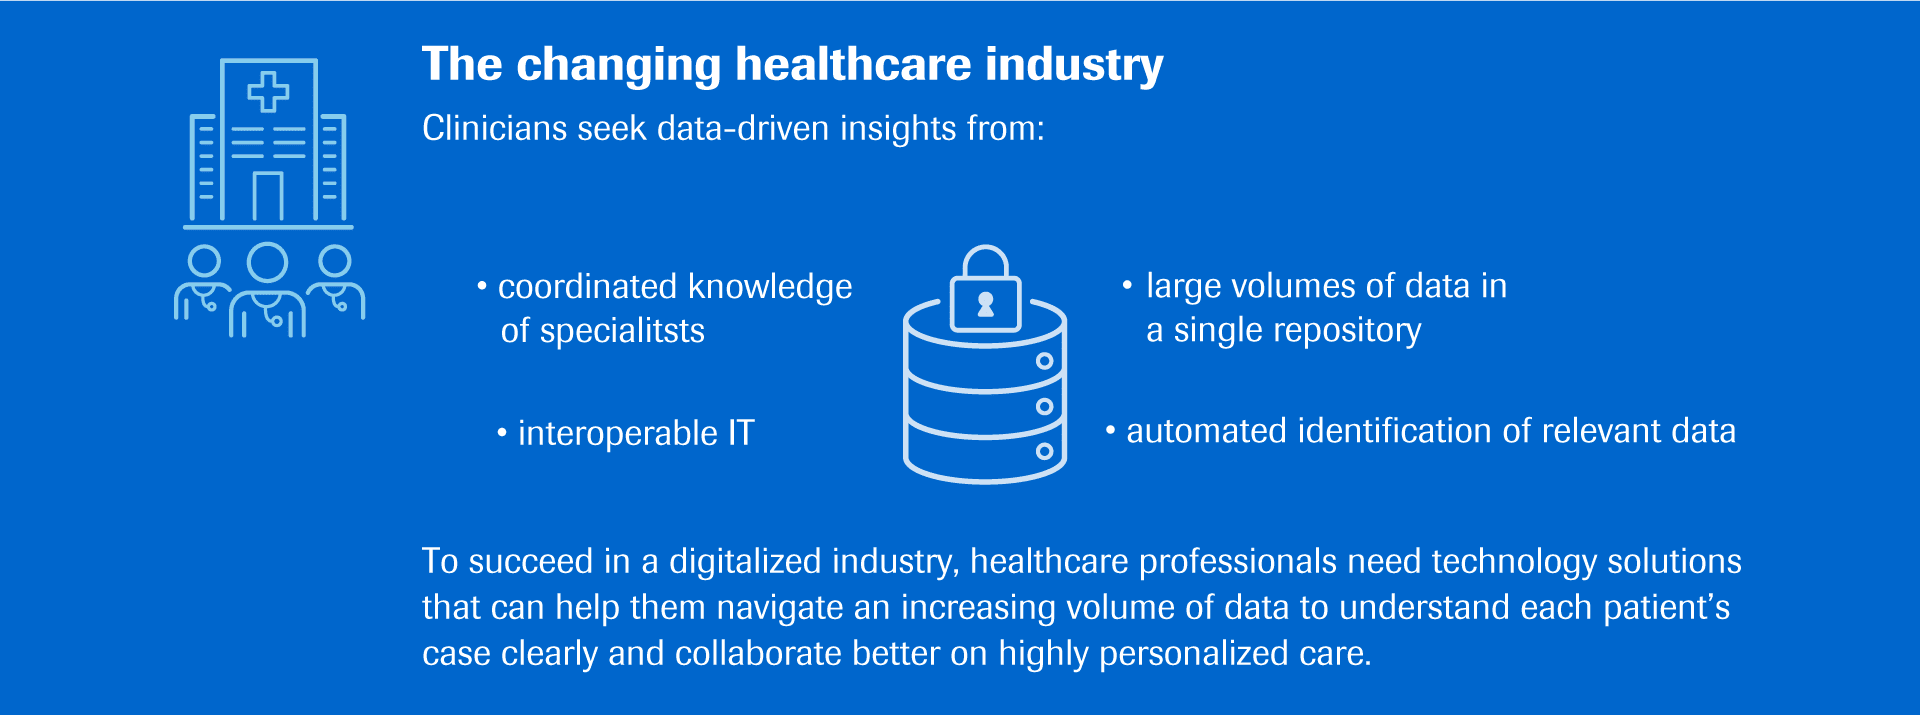 NAVIFY® Infographic: The changing healthcare industry